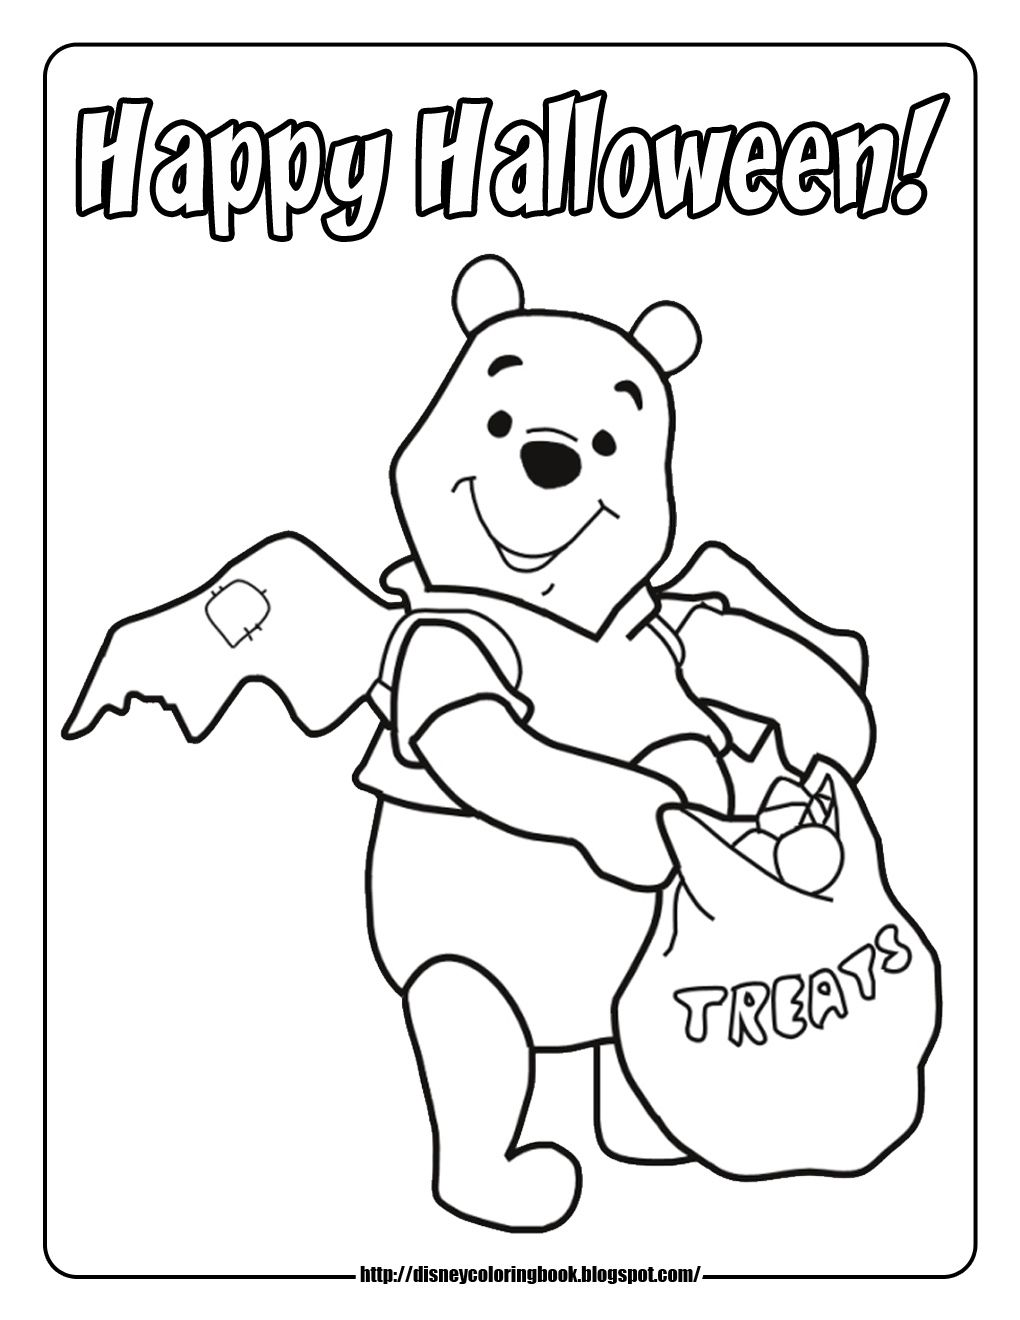 Happy Halloween Winnie The Pooh Colouring Page Halloween Coloring Pages Disney Coloring Pages Bear Coloring Pages